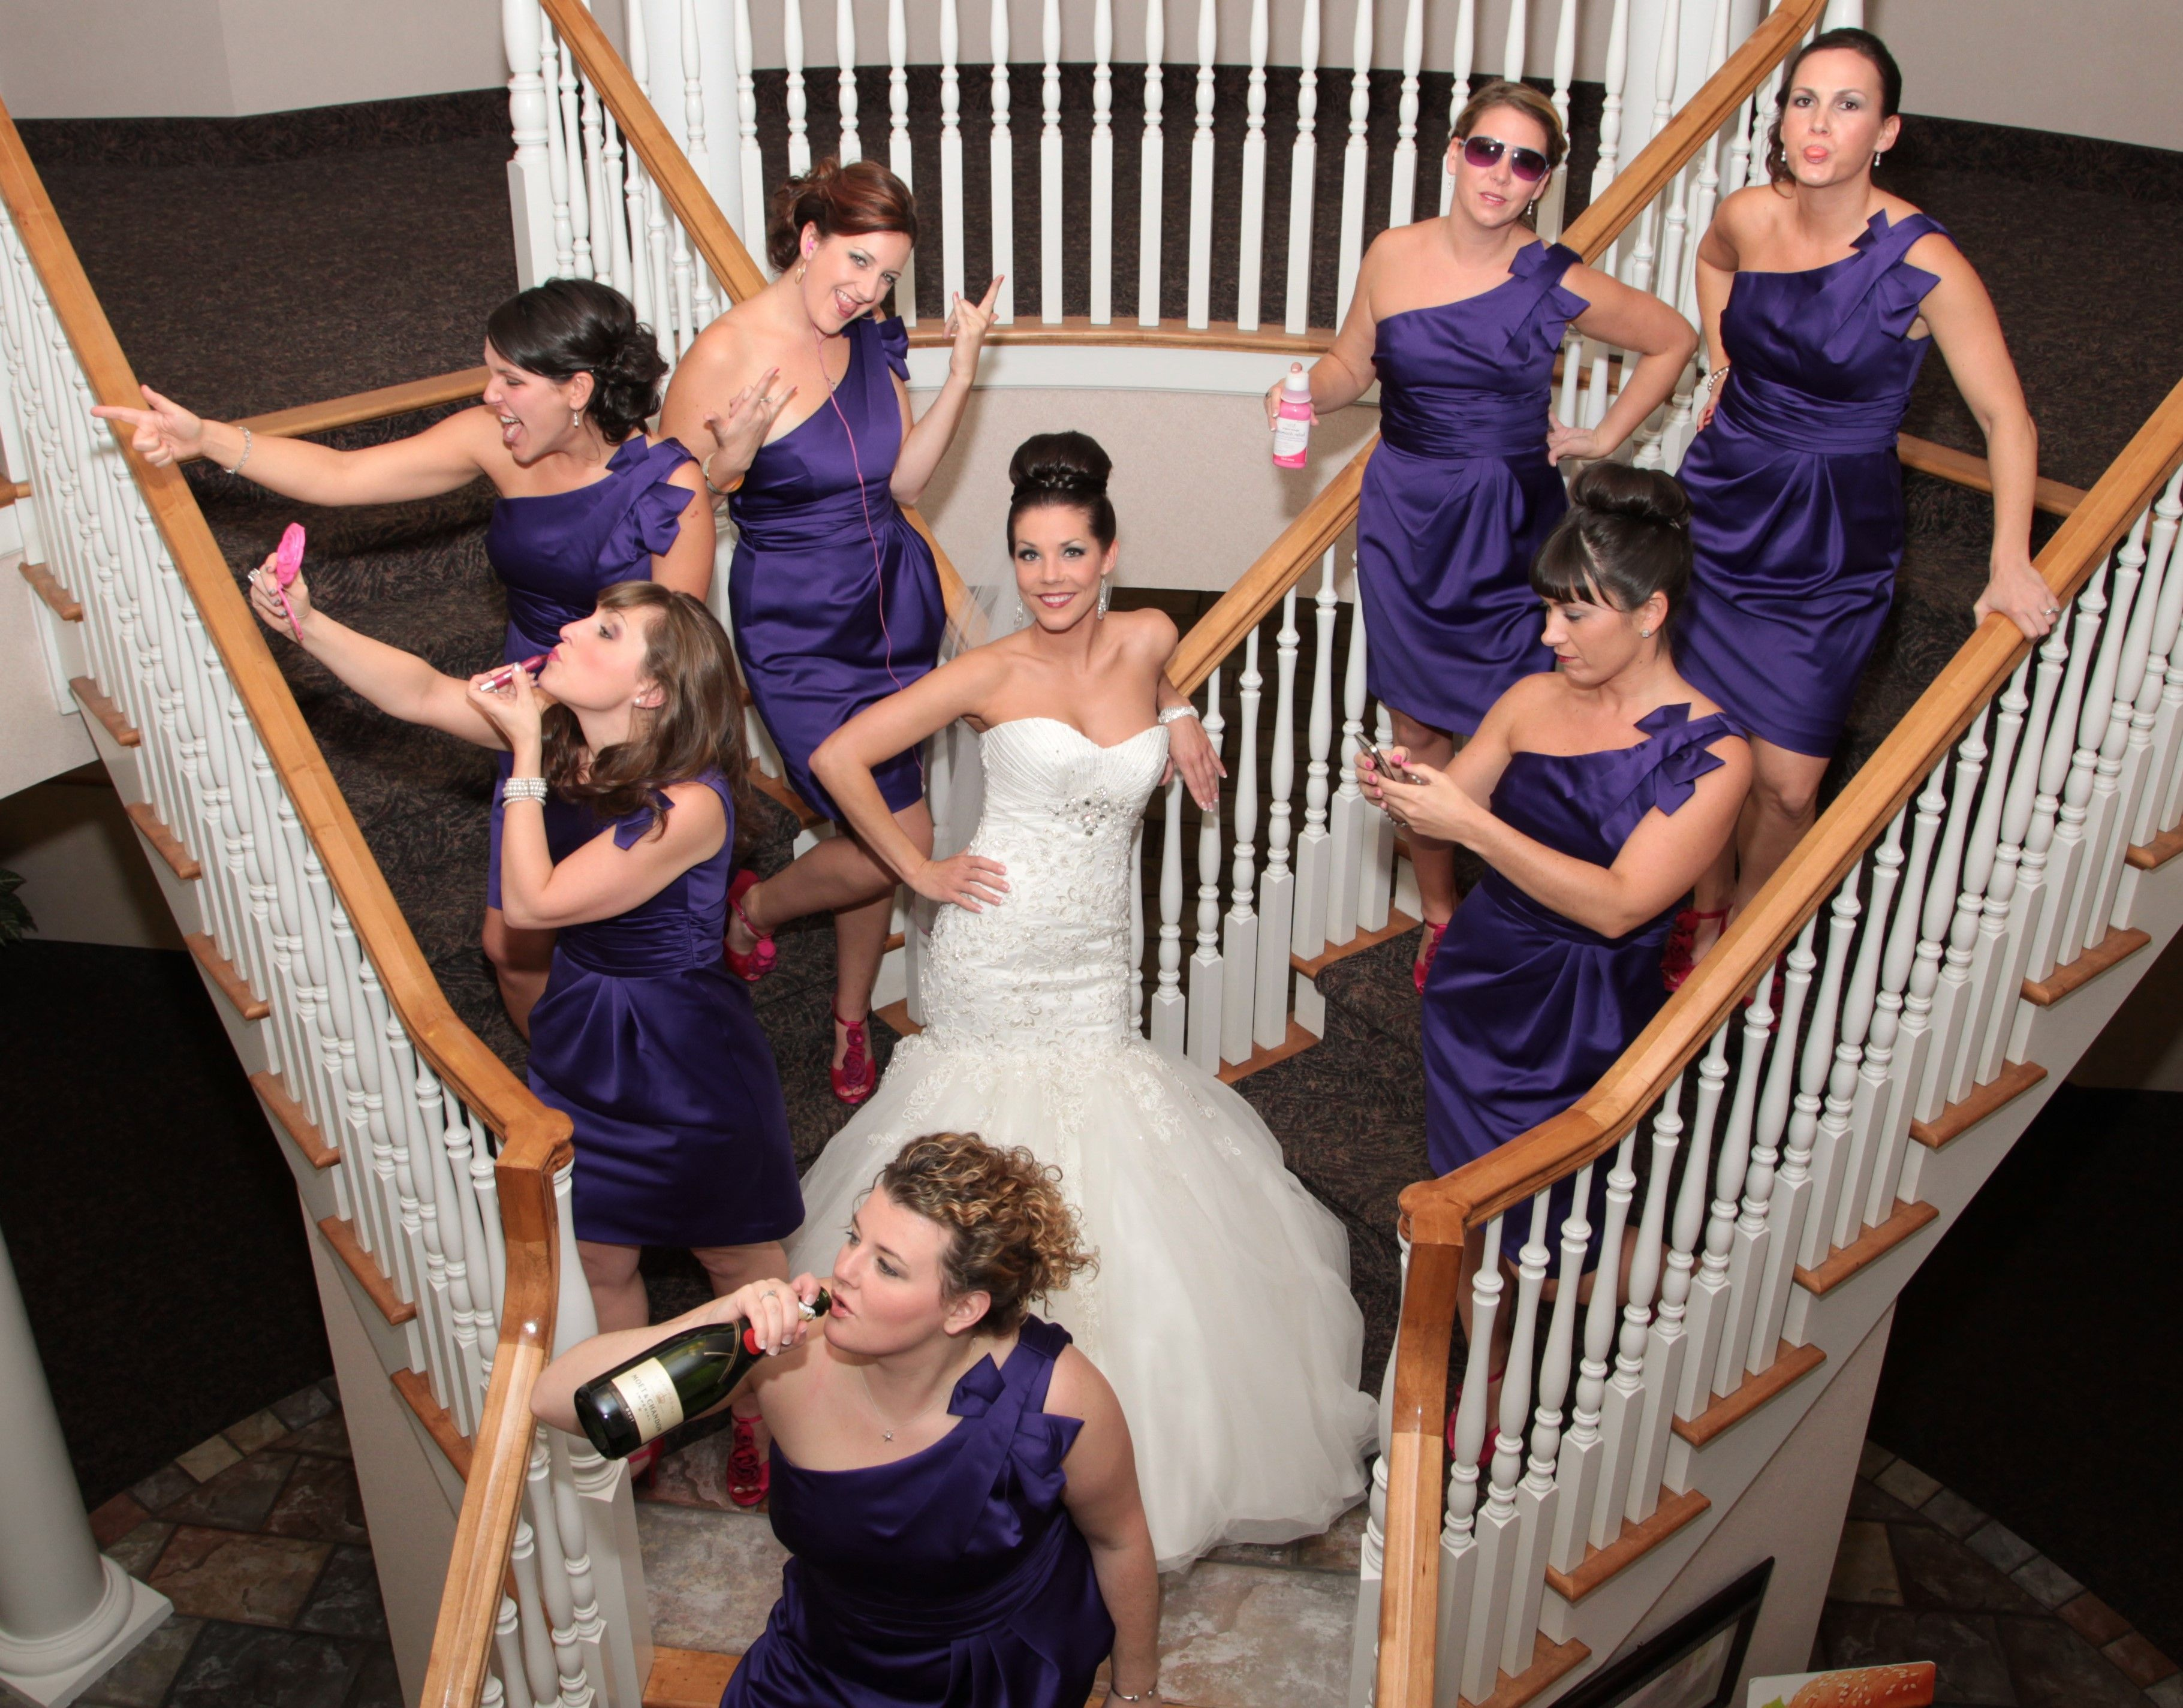 Funny bridesmaid picture my fall wedding pinterest funny funny bridesmaid picture ombrellifo Choice Image